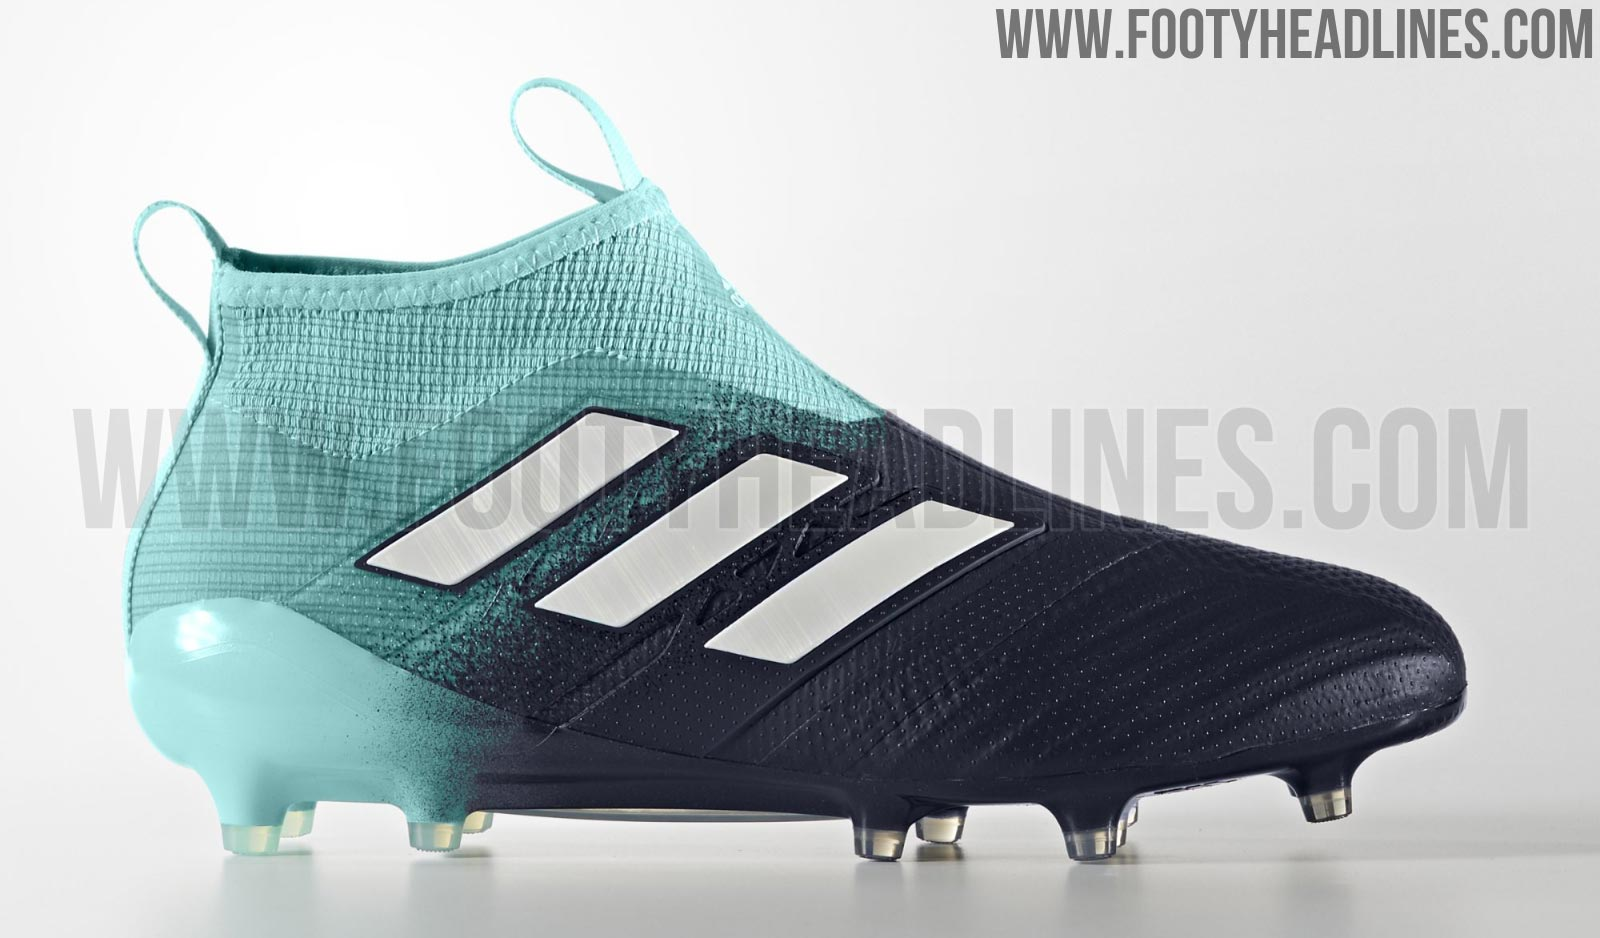 Cr7 Hd Wallpapers 2017 Adidas Ace Copa Nemeziz Nemeziz Messi And X 2017 18